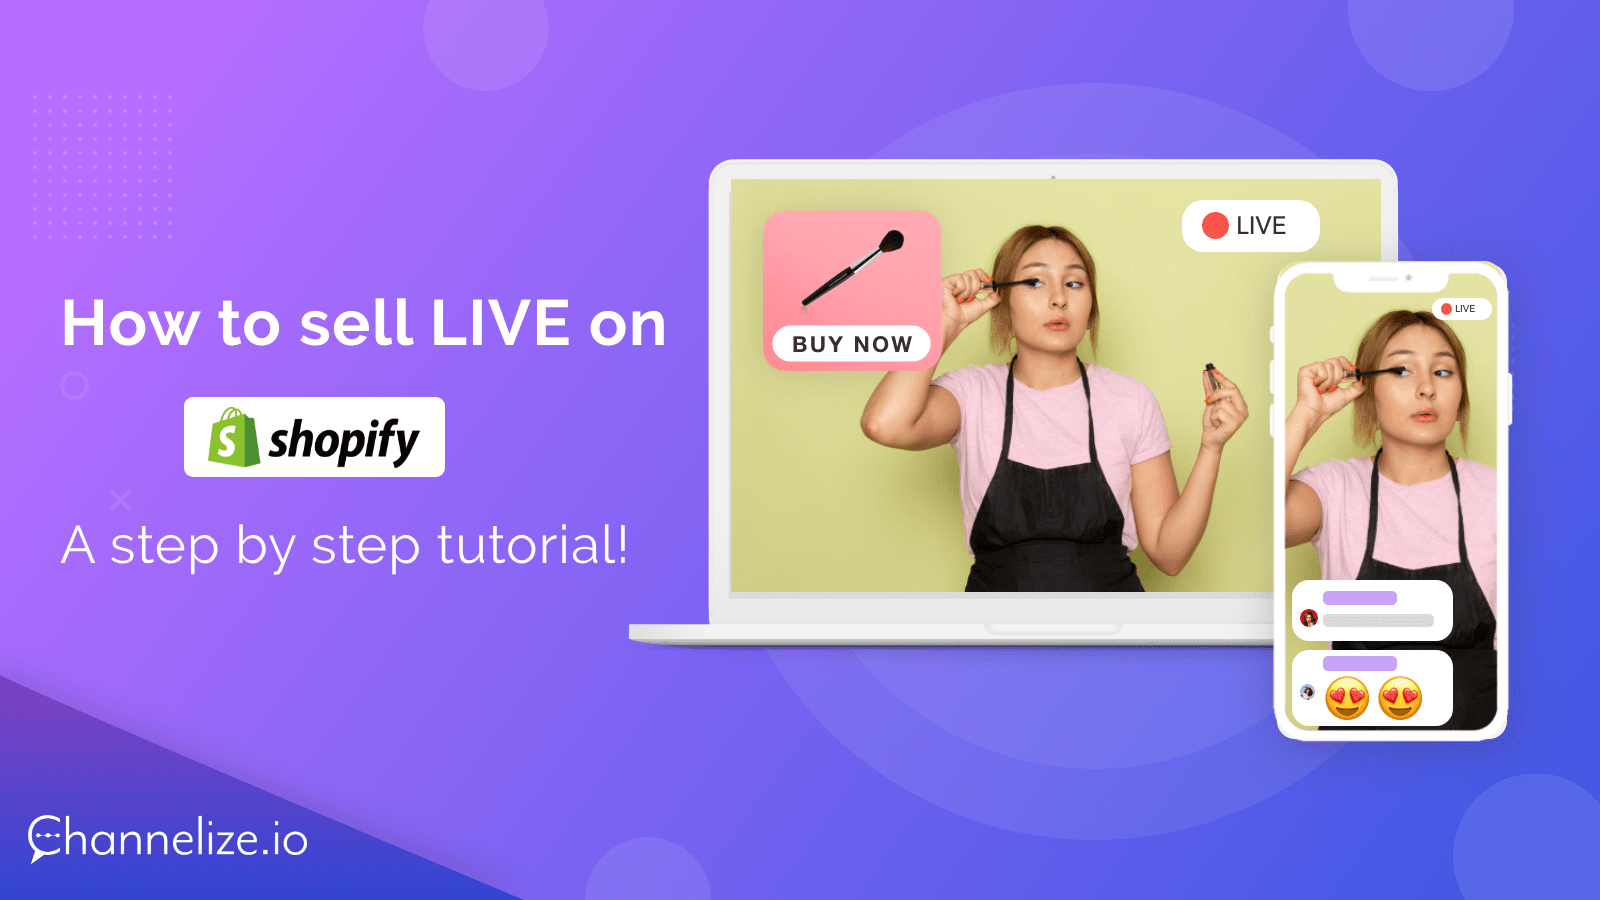 How to sell live on Shopify - A step by step tutorial!